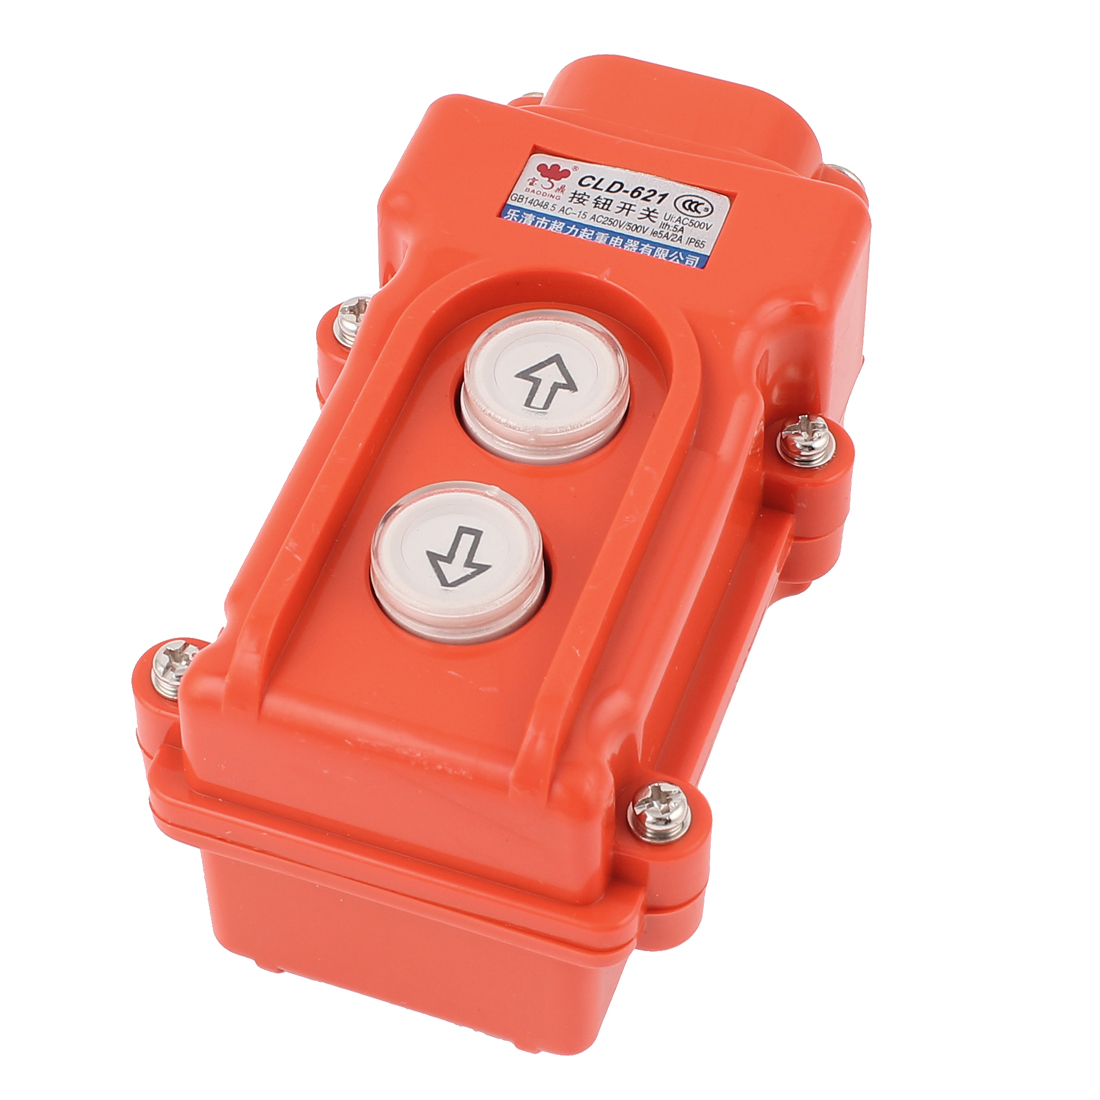 AC 500V 5A Hoist Crane Pendant Up-Down Rain Proof Pushbutton Switch CLD-621